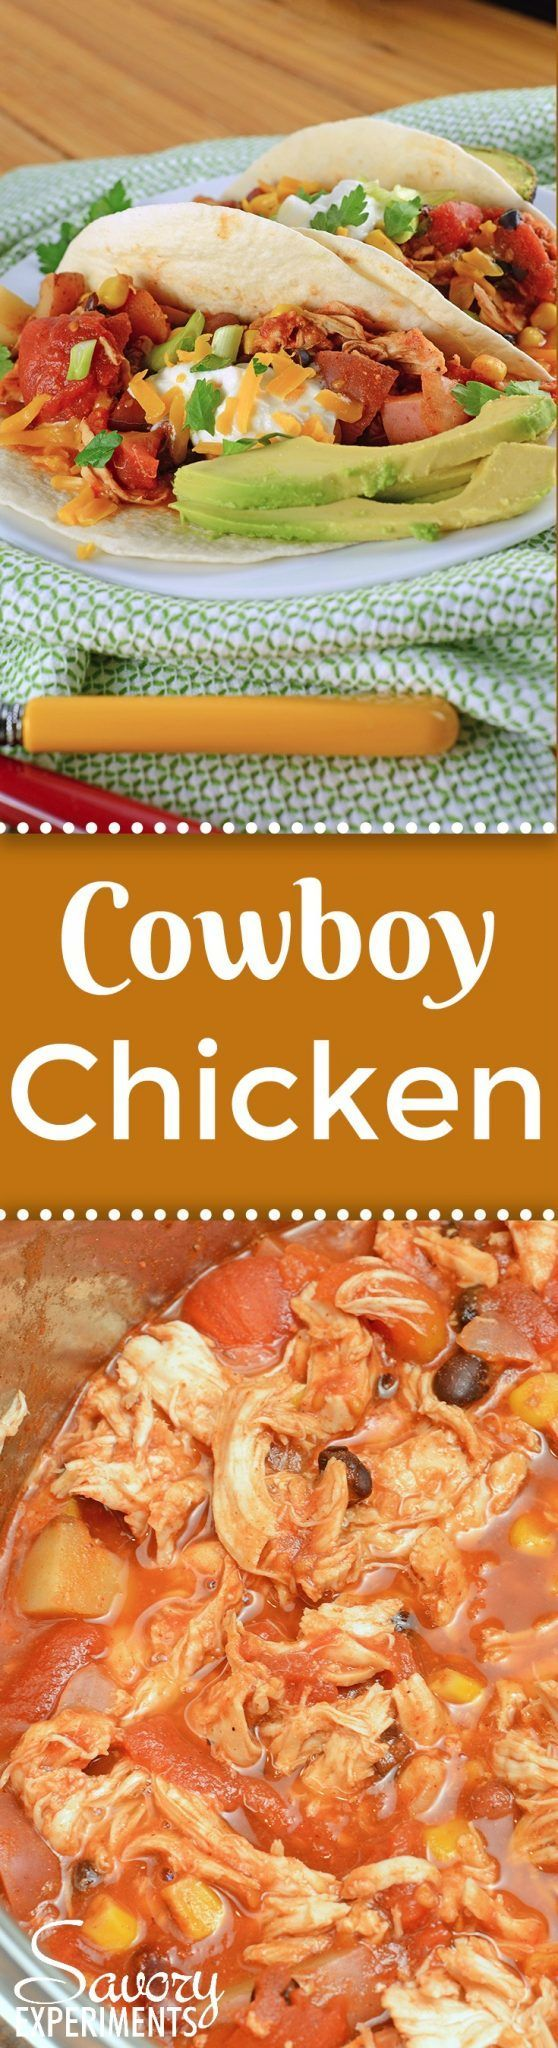 Slow Cooker Cowboy Chicken is an easy chicken recipe your whole family will love packed with corn, potatoes, bean and a zesty taco seasoning! #slowcookerrecipes #easychickenrecipes www.savoryexperiments.com